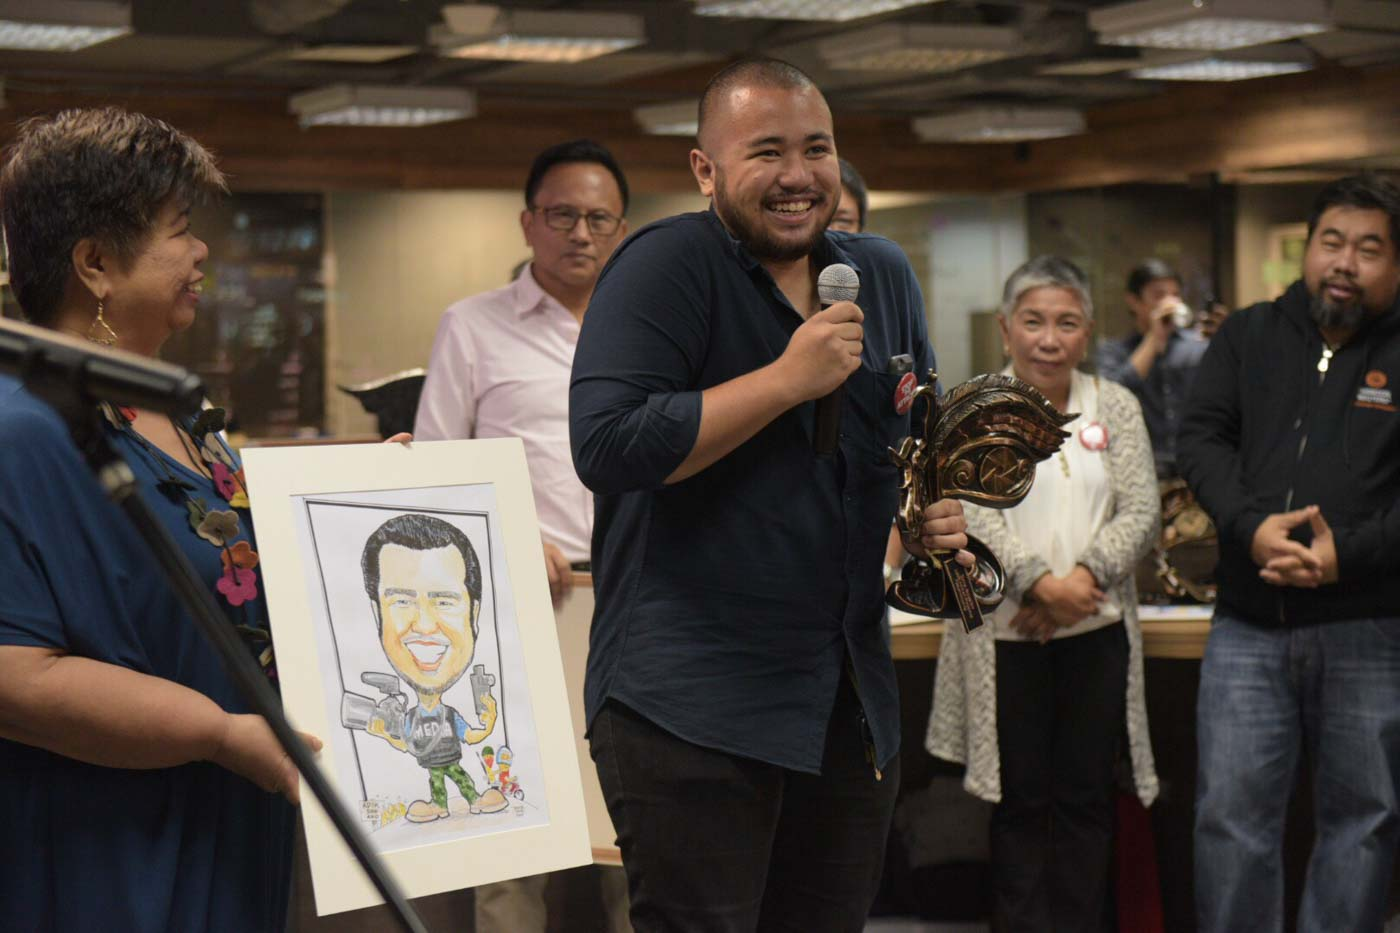 FREE PRESS. Award-wining photojournalist Ezra Acayan is recognized during the SIKATO on Thursday, December 6, for his excellence and courage in producing stories related to President Rodrigo Duterte's drug war. Photo by Leanne Jazul/Rappler